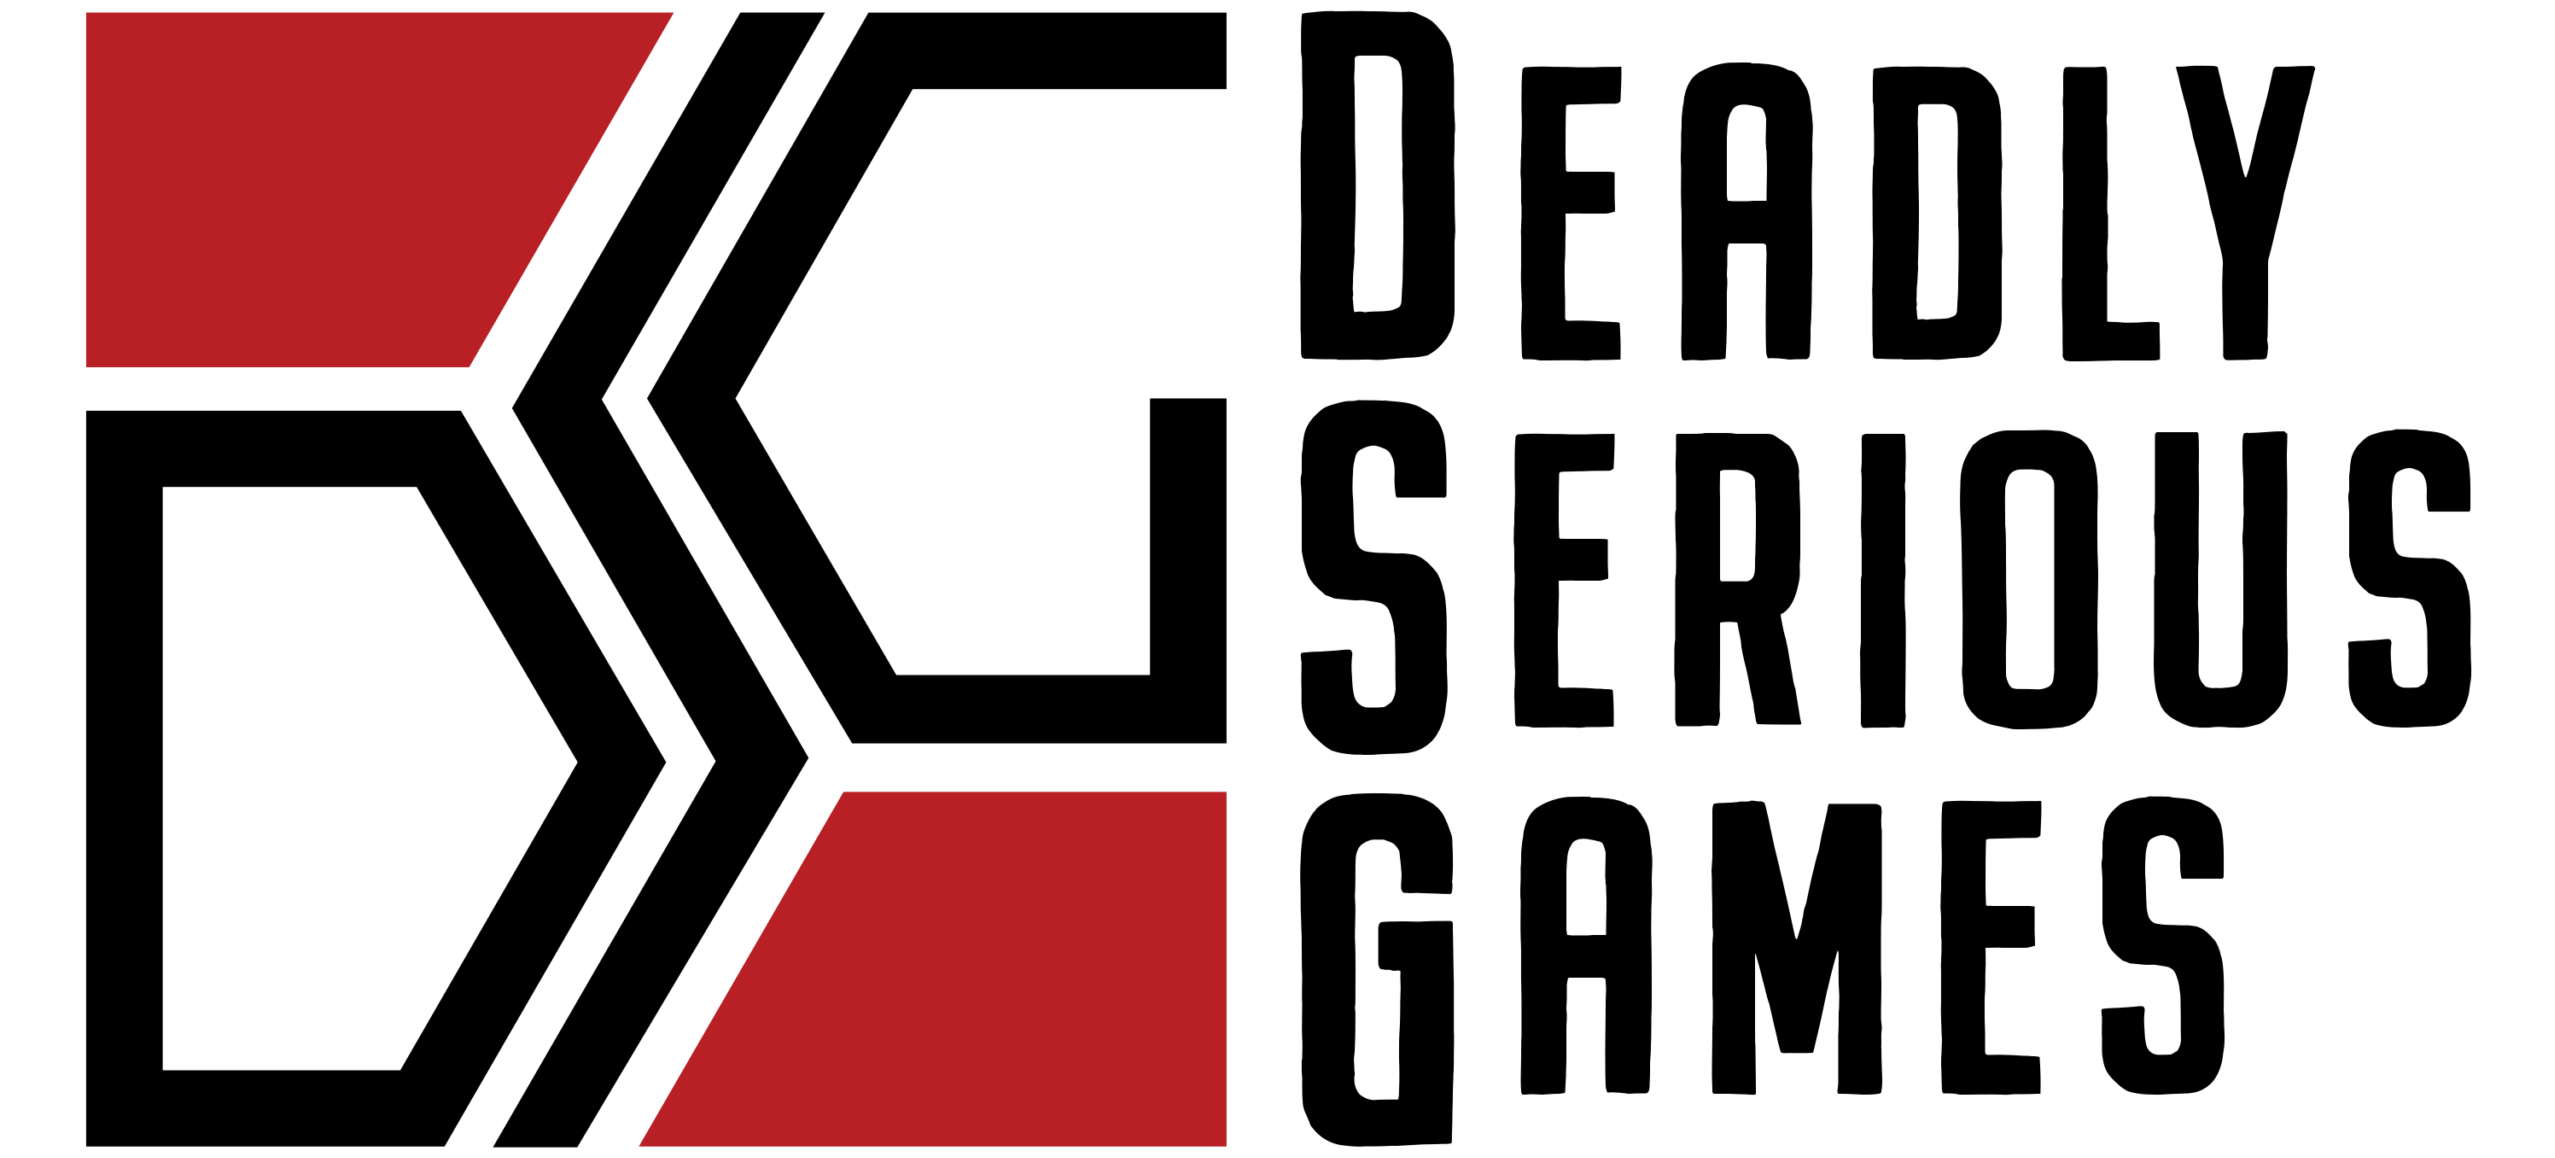 Deadly Serious Games